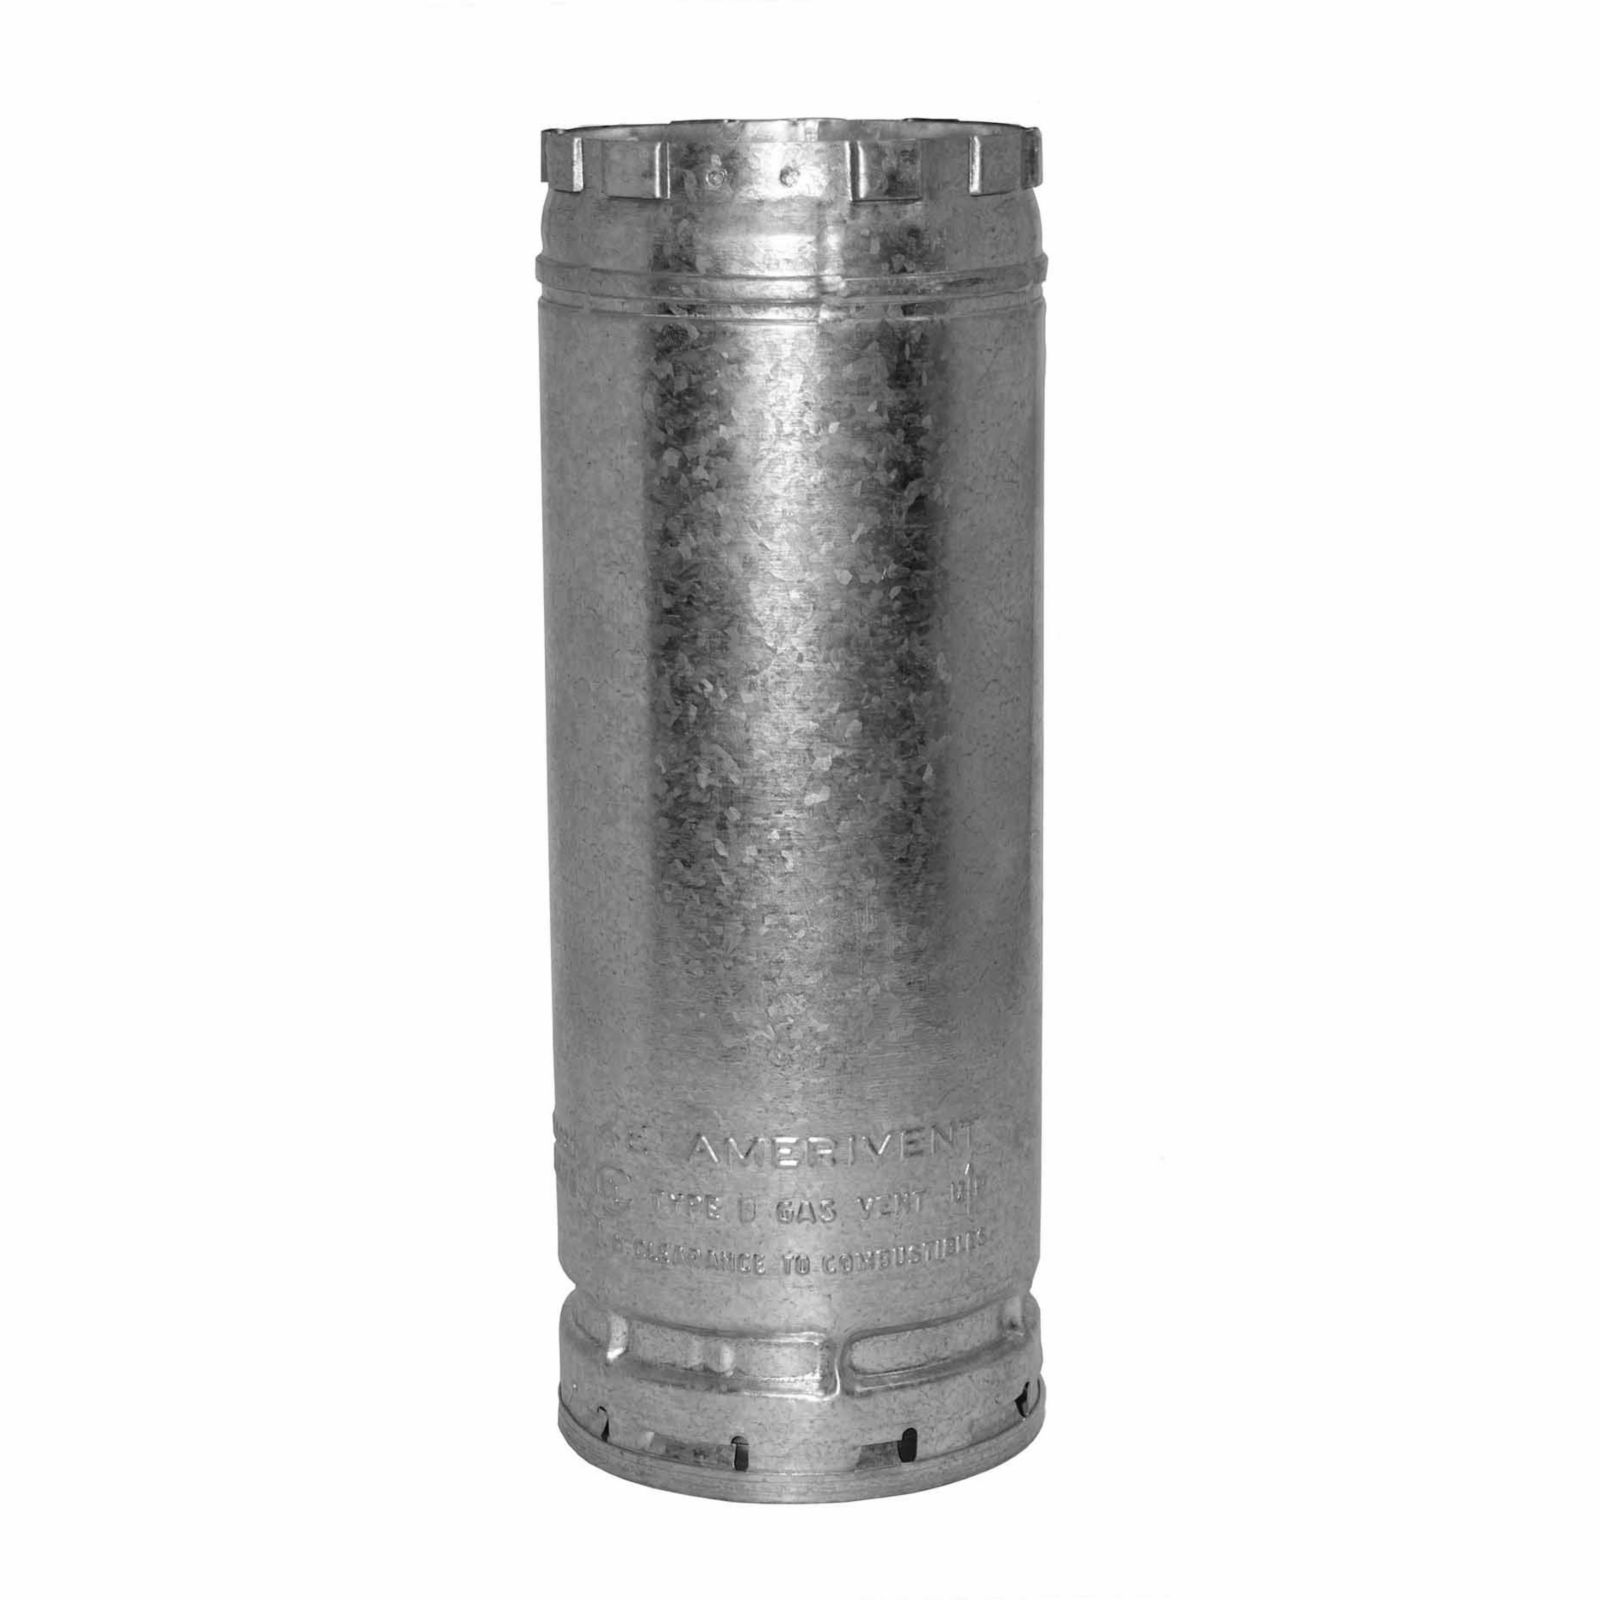 "AmeriVent 3E4 - Pipe Section Type B Gas Vent, 3"" Round X 48"" Length"